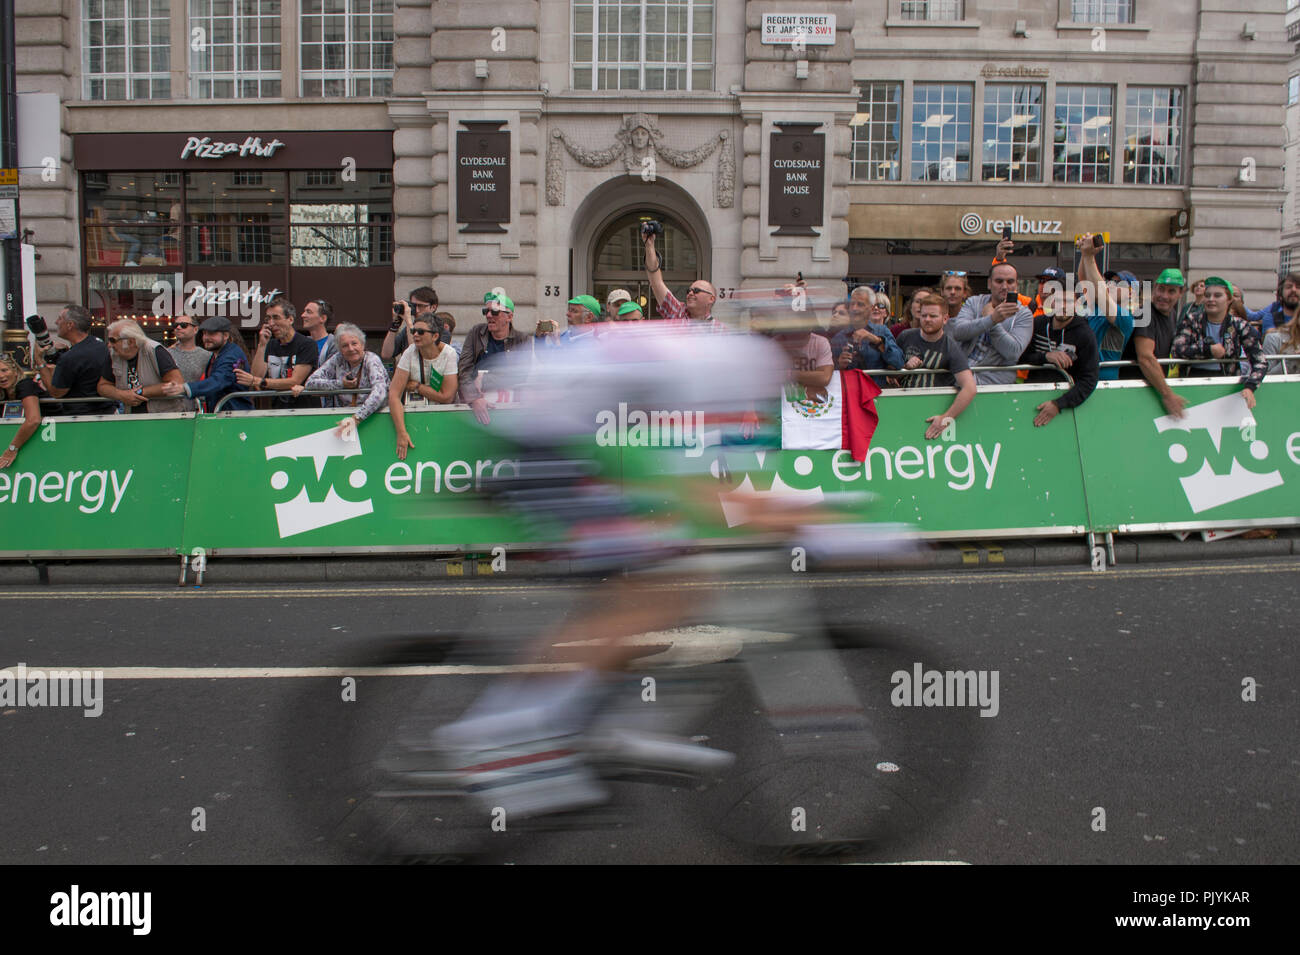 London, UK. 9 September, 2018. The OVO Energy Tour of Britain London Stage 8 concludes with a 14 lap circuit in central London on closed roads in front of large crowds and covering 77km at speeds of up to 80kph, starting and finishing on Regent Street St James's close to Piccadilly Circus. Connor Swift, British Road Race Champion, passes in a speed blur. Credit: Malcolm Park/Alamy Live News. - Stock Image